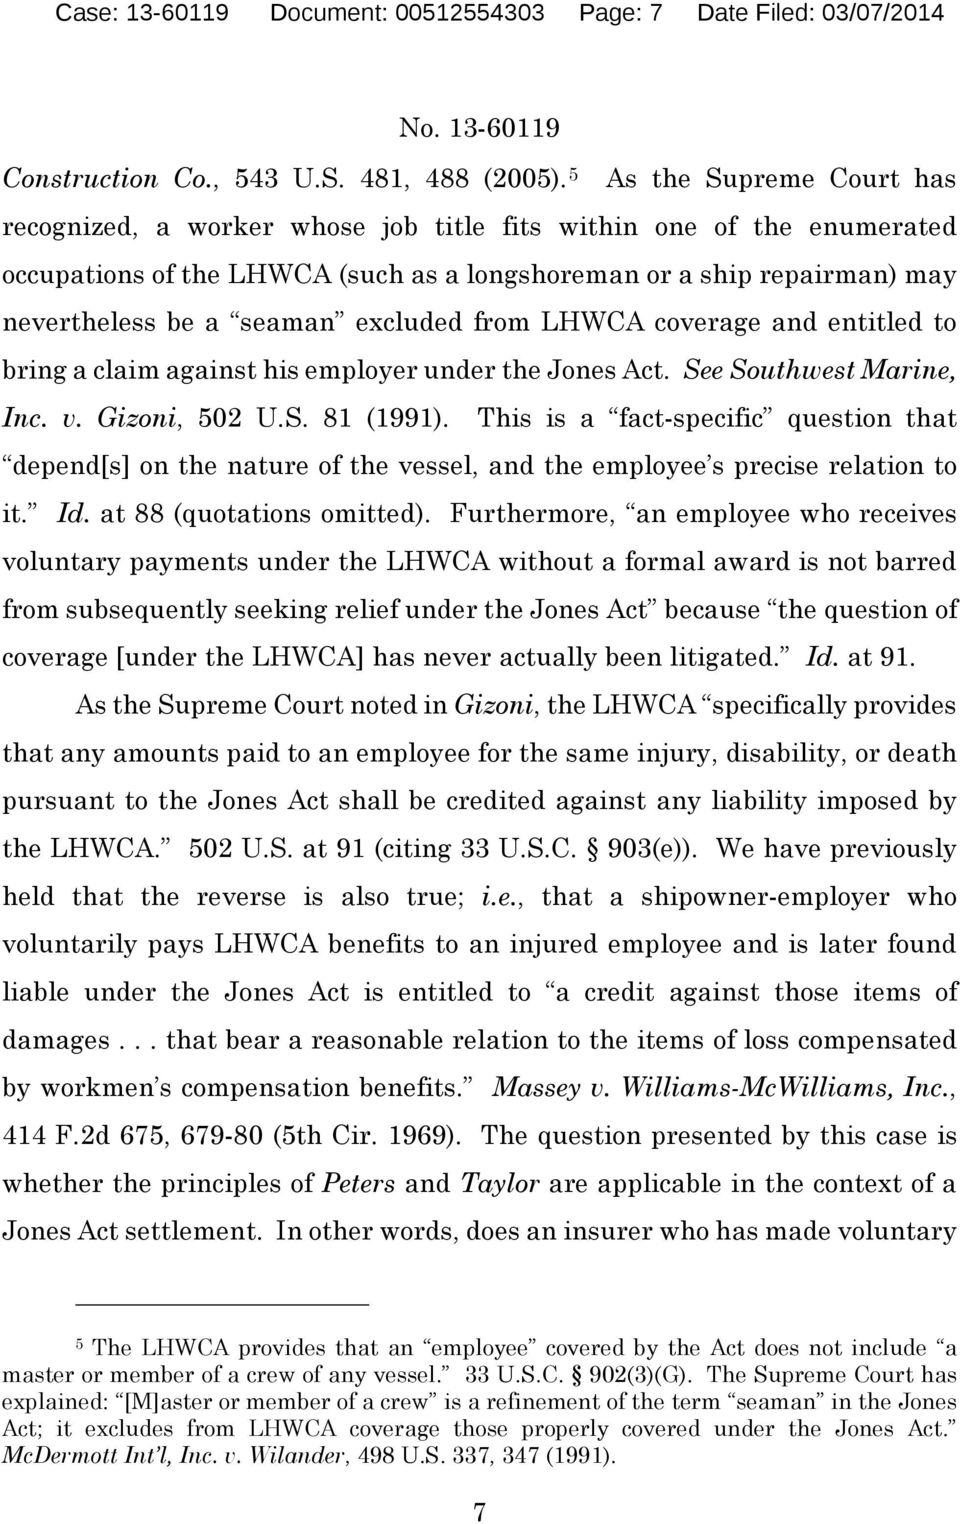 excluded from LHWCA coverage and entitled to bring a claim against his employer under the Jones Act. See Southwest Marine, Inc. v. Gizoni, 502 U.S. 81 (1991).